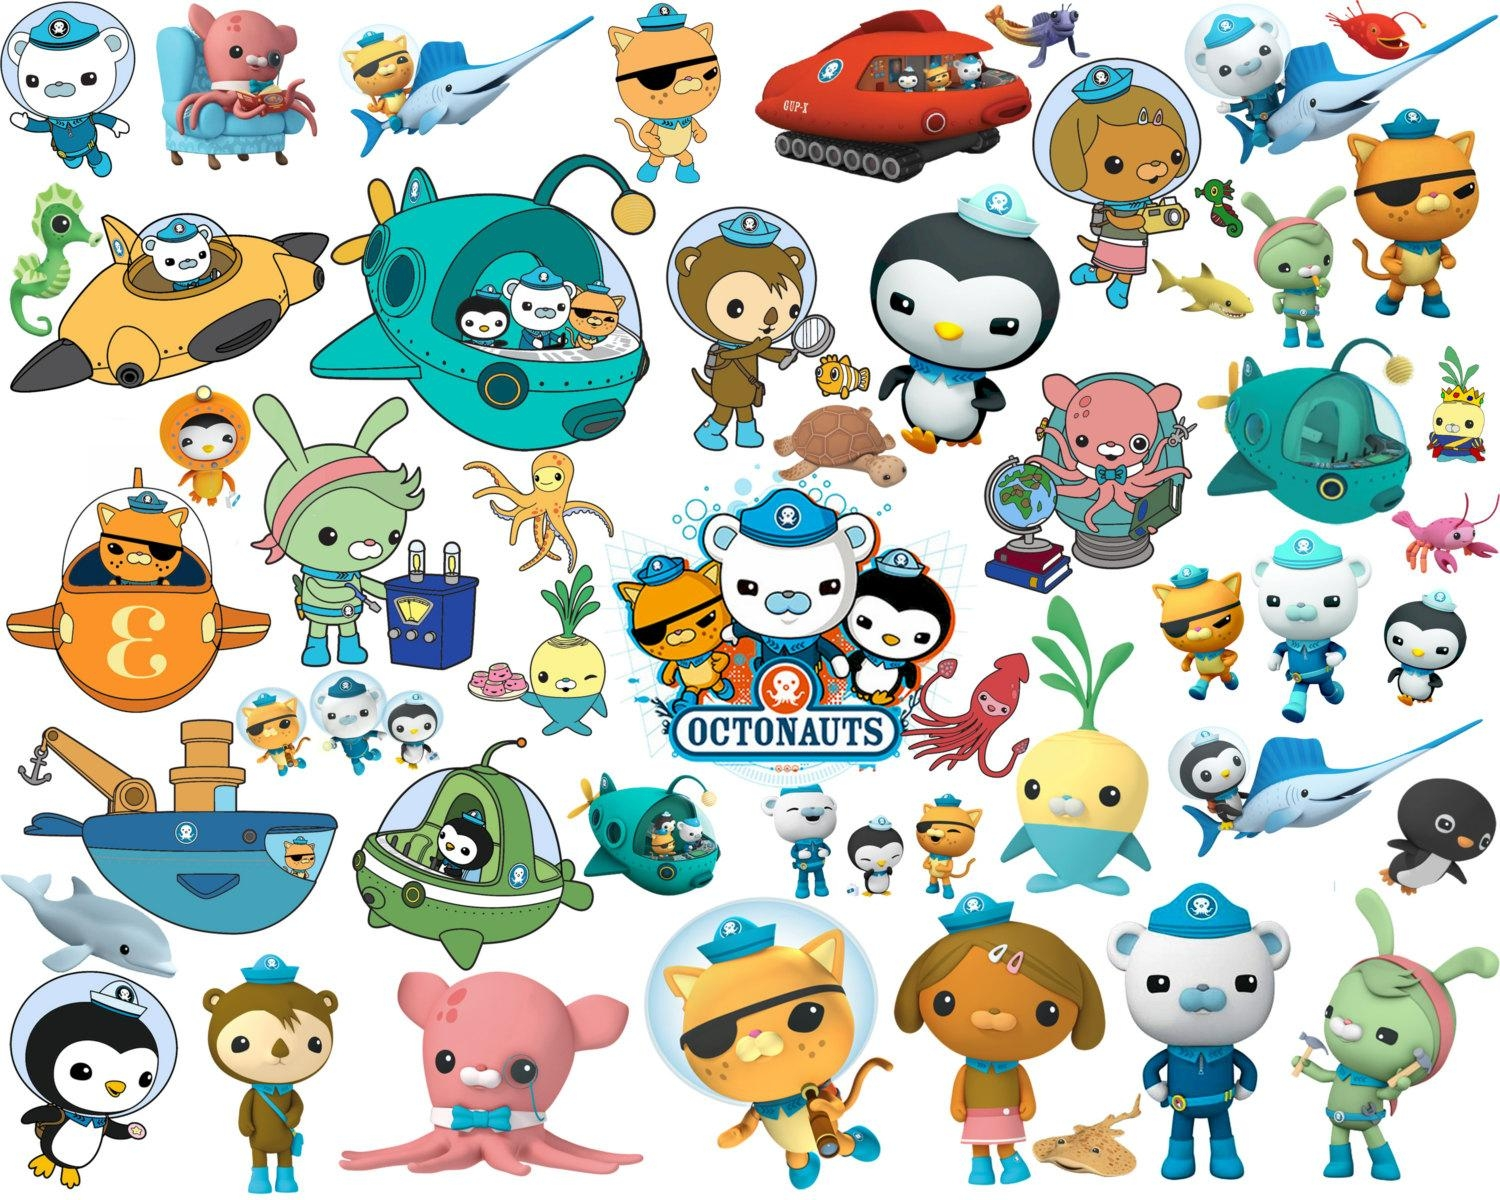 74 Octonauts Clipart And Silhouette Octonauts Clipart For Octonauts Wall Art (View 11 of 17)